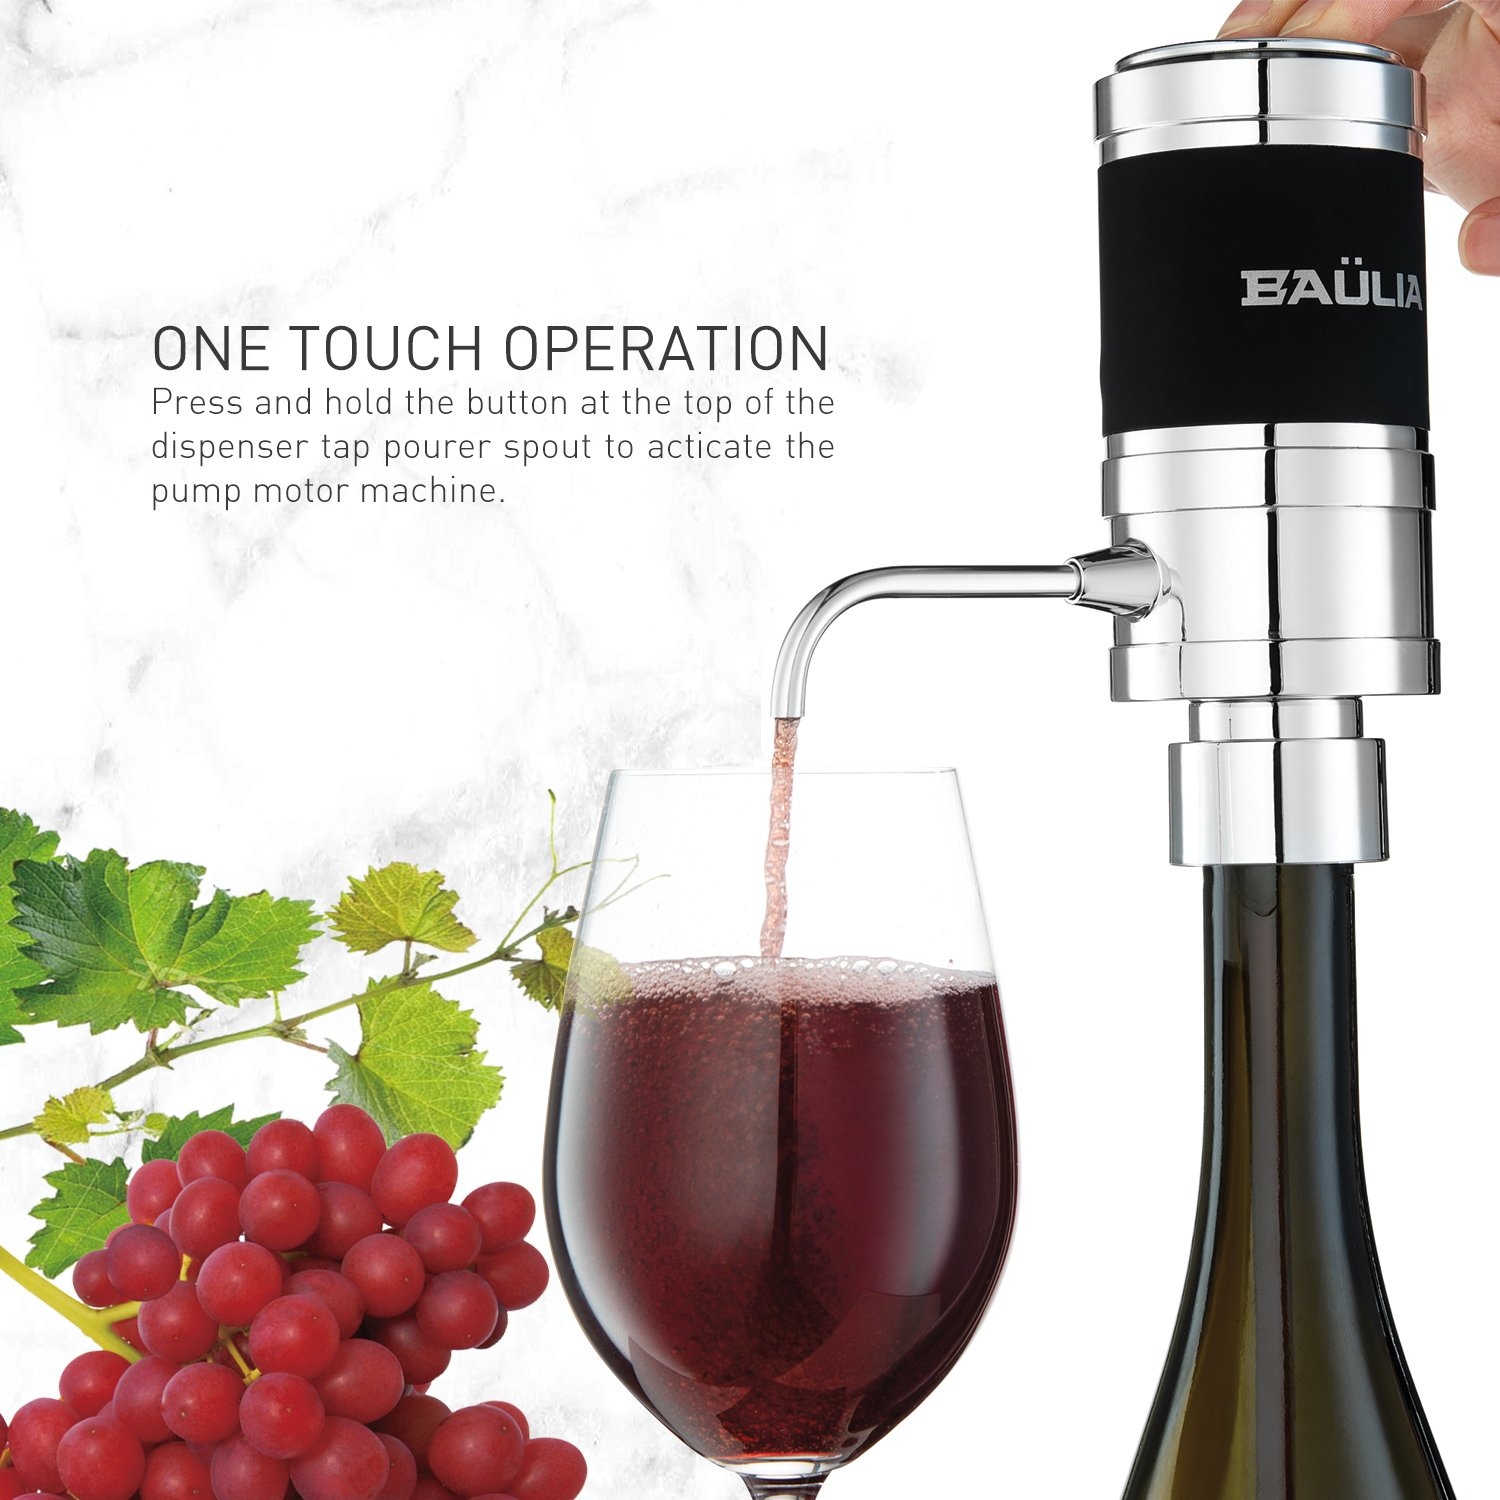 Baulia WA819 Electric Aerator – One Touch Operation Instantly Allow Wine to Breath, Pump Dispenser with Vacuum Sealer, Silver by Baulia (Image #1)